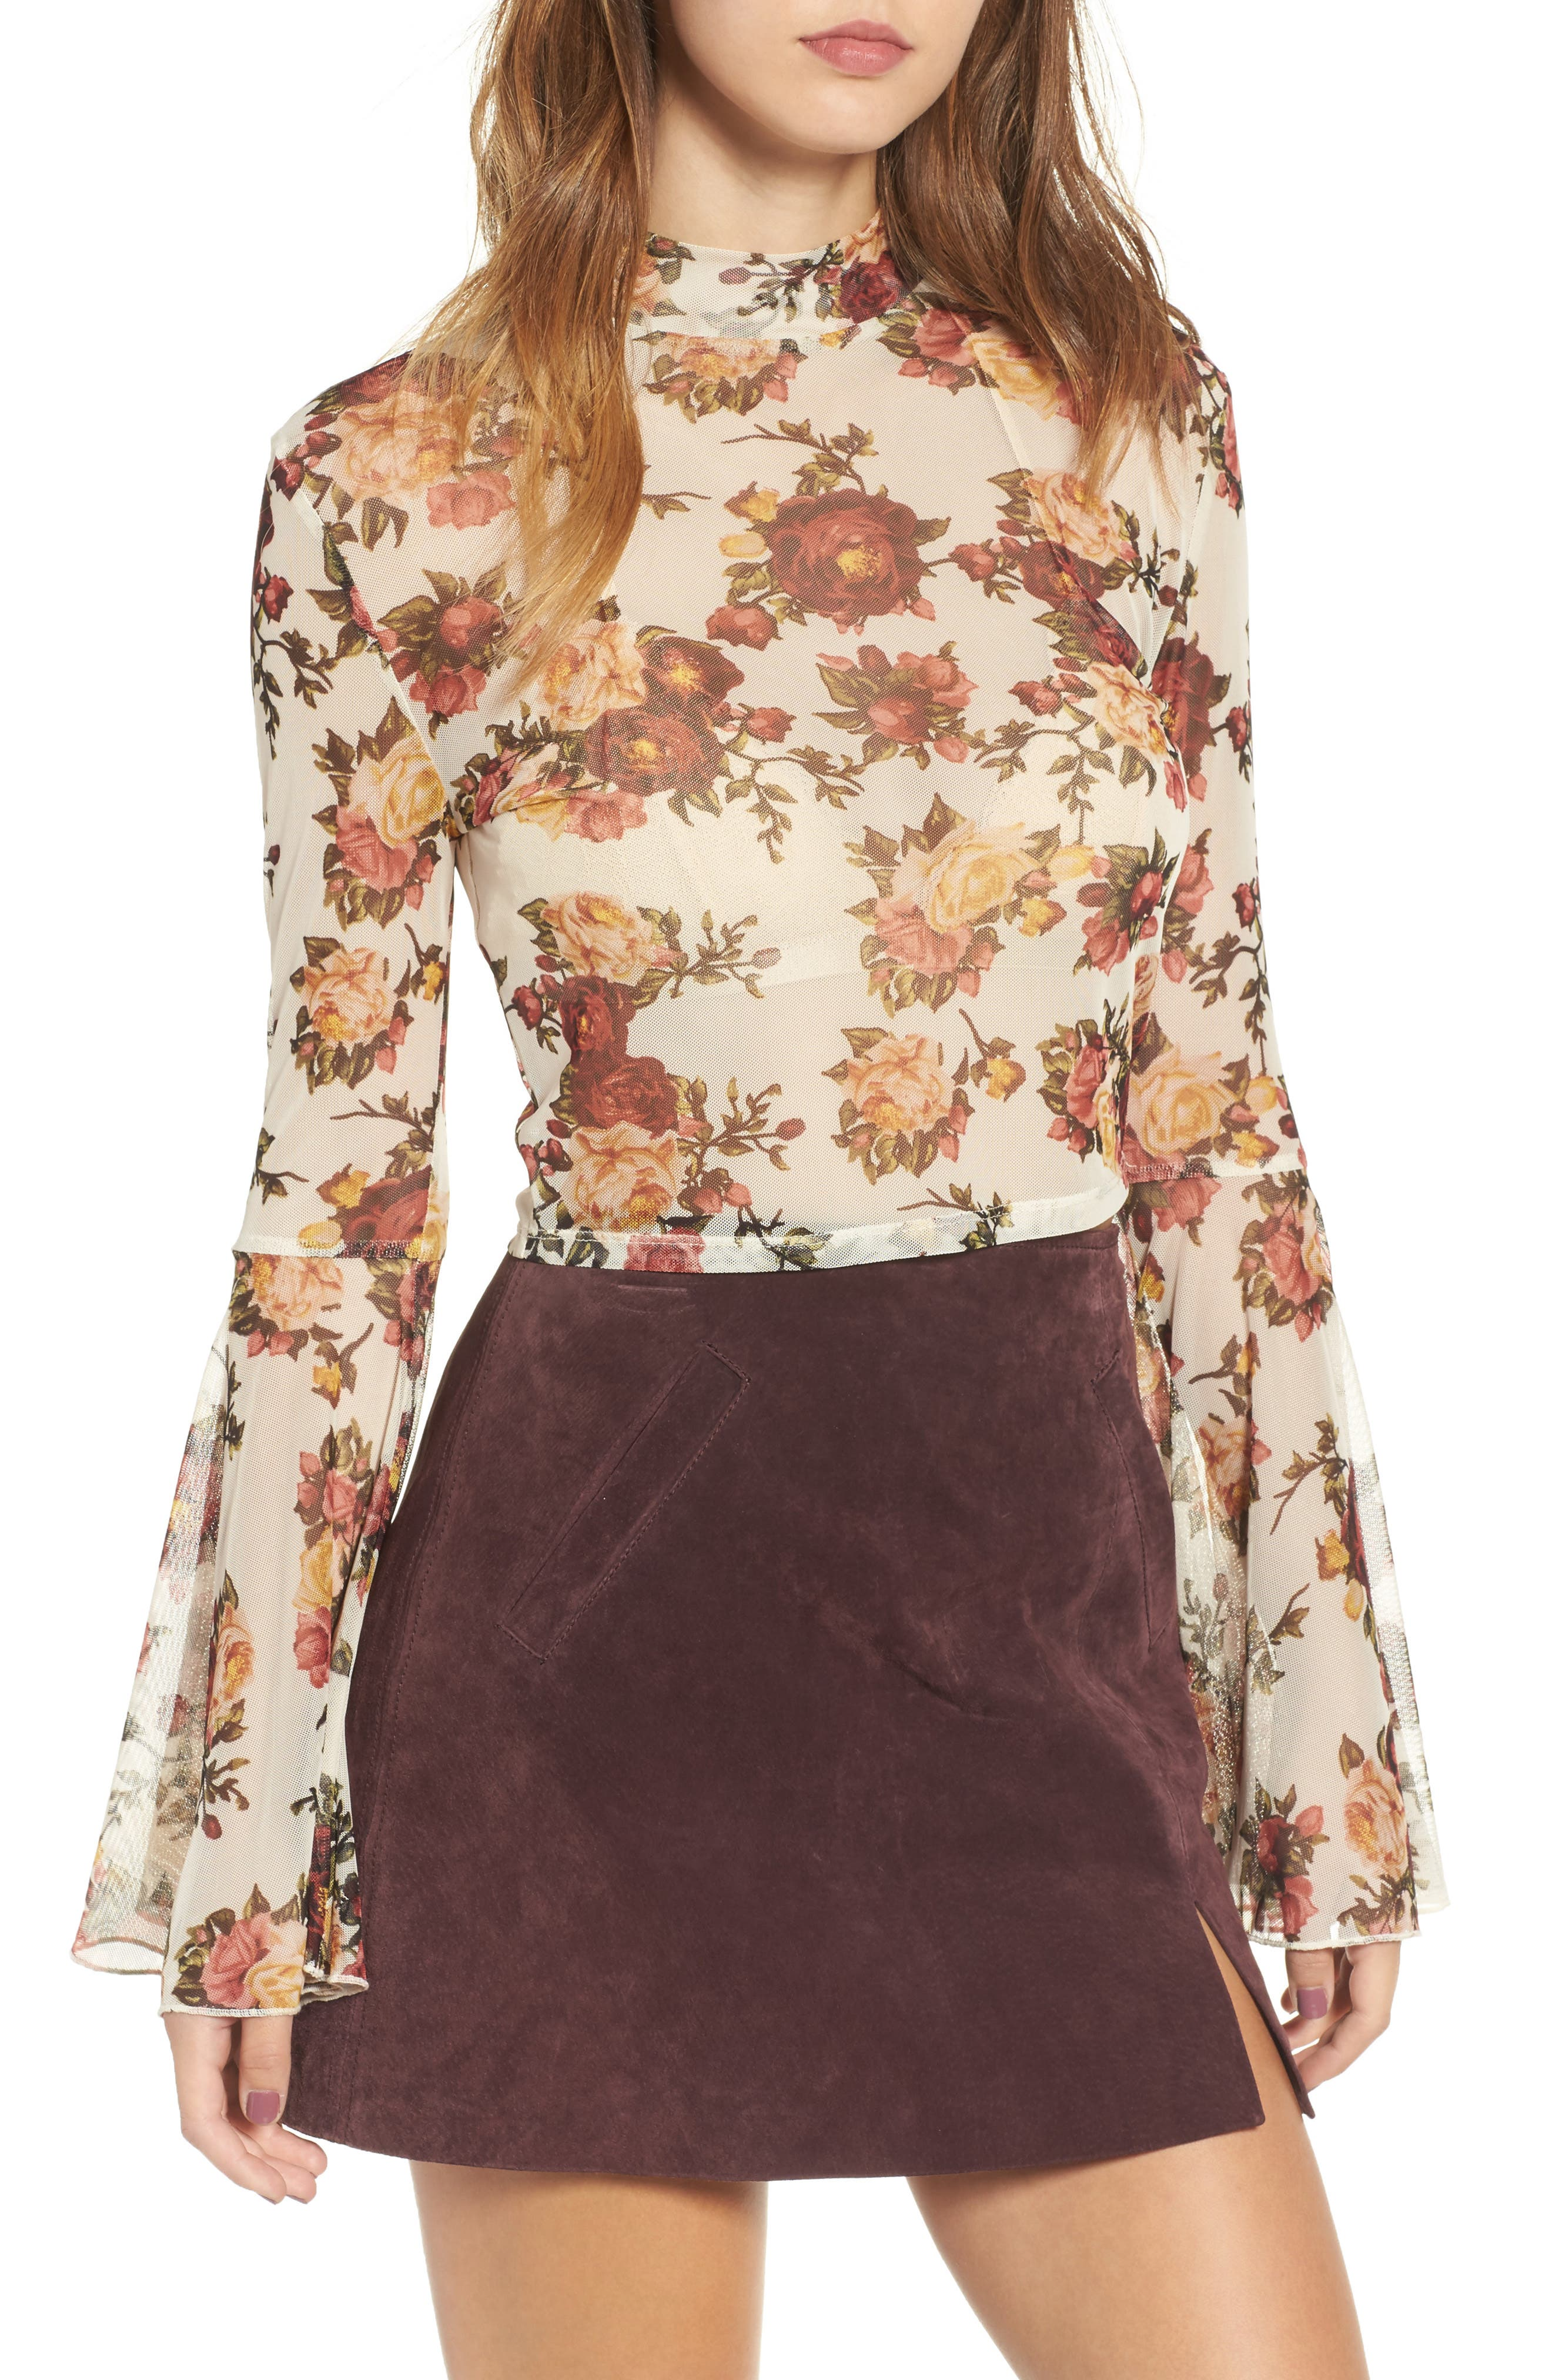 Mimi Chica Floral Mesh Bell Sleeve Crop Top